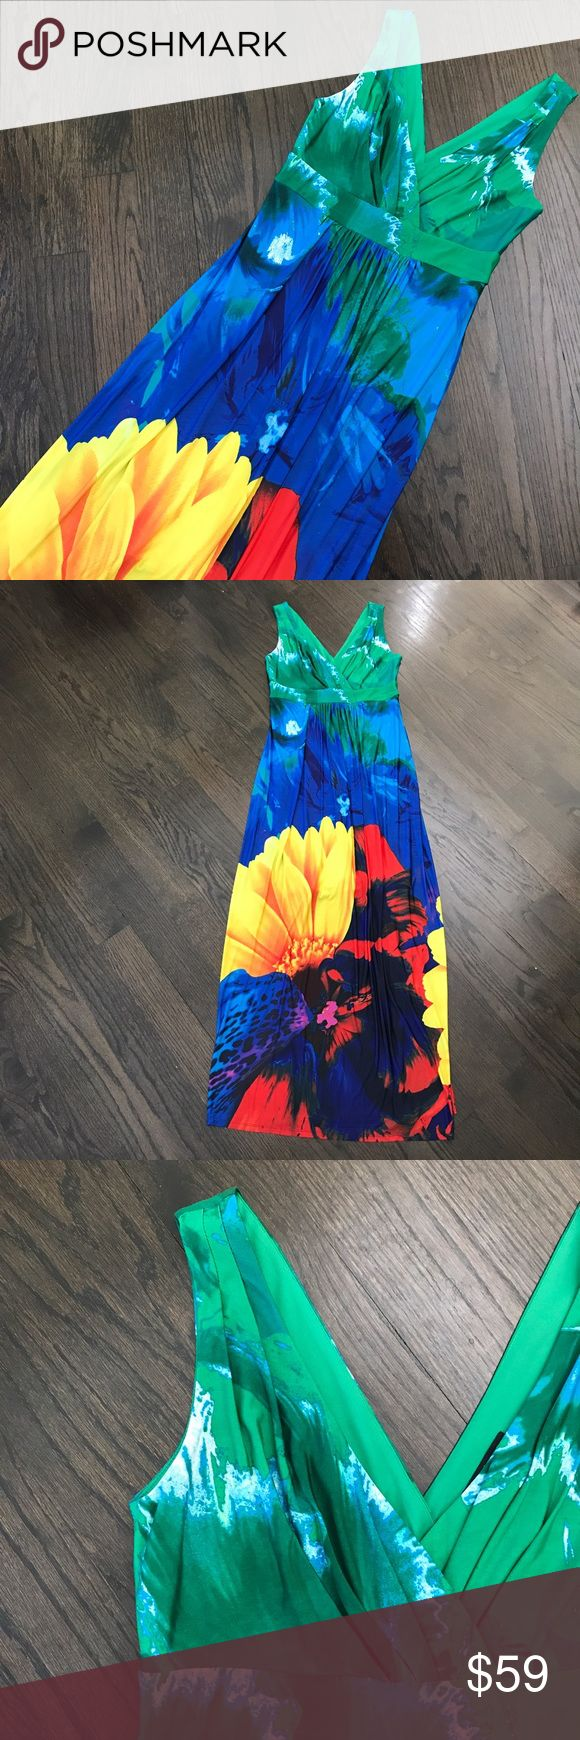 Ronni Nicole Colorful Sleeveless Maxi Dress So pretty! Ronni Nicole maxi dress. Vibrant colors including blue, green, red, and yellow. Perfect for vacation! Please note: this has an attached nude thick slip from below the bust that goes down to the knees(it's like a built in Spanx). Size Small. Brand new without tags...in perfect condition! Ronni Nicole Dresses Maxi